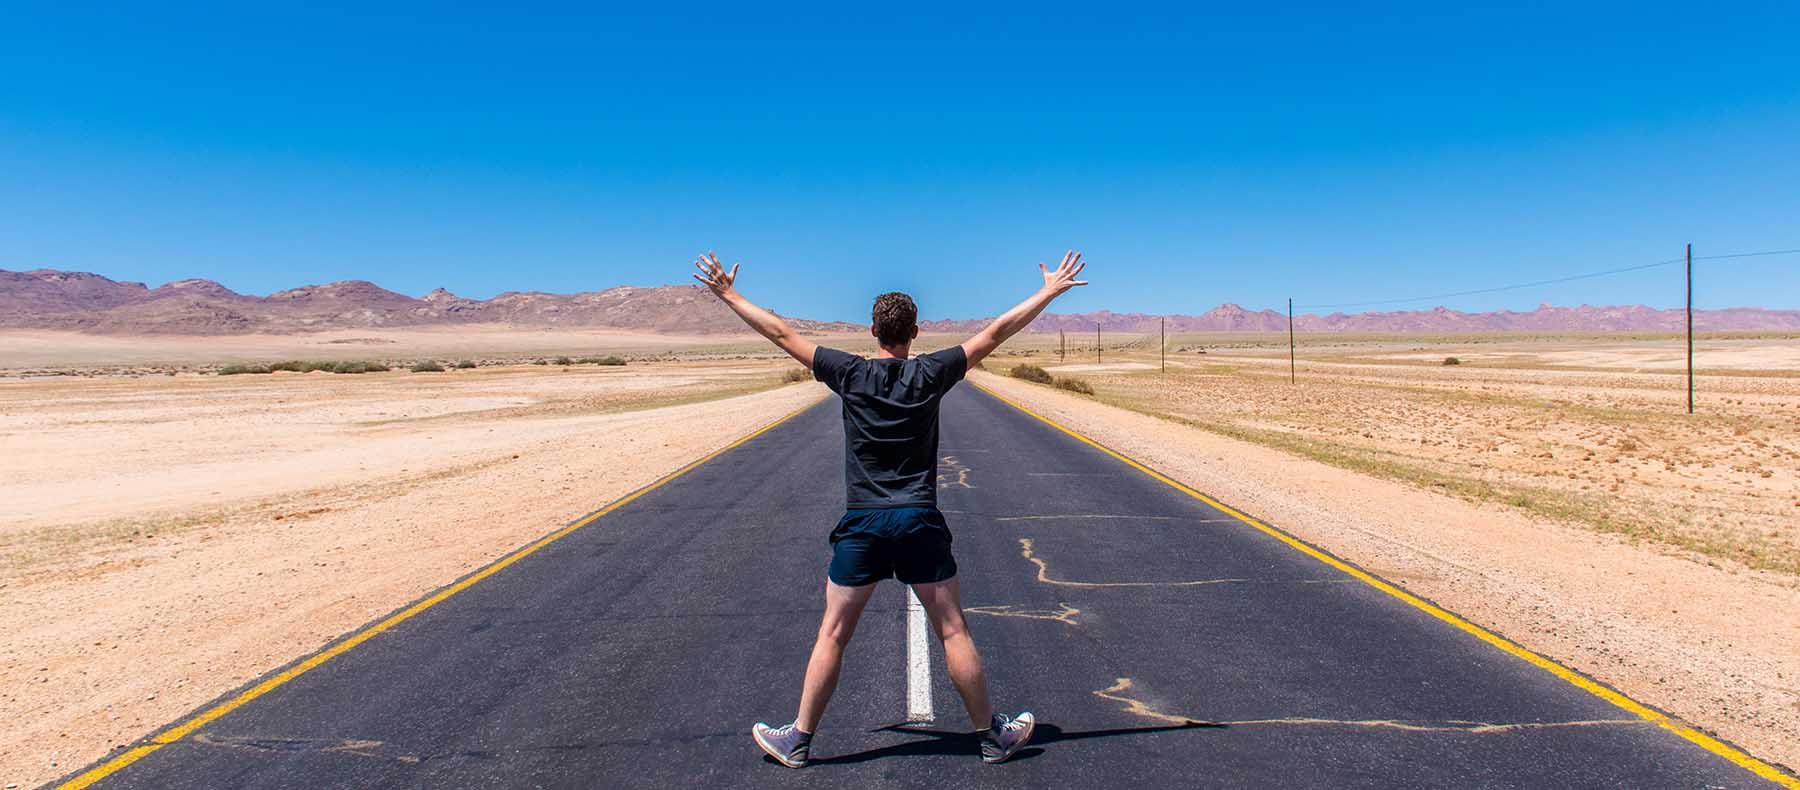 me (Jackson) on the road between Luderitz and Garub in Namibia